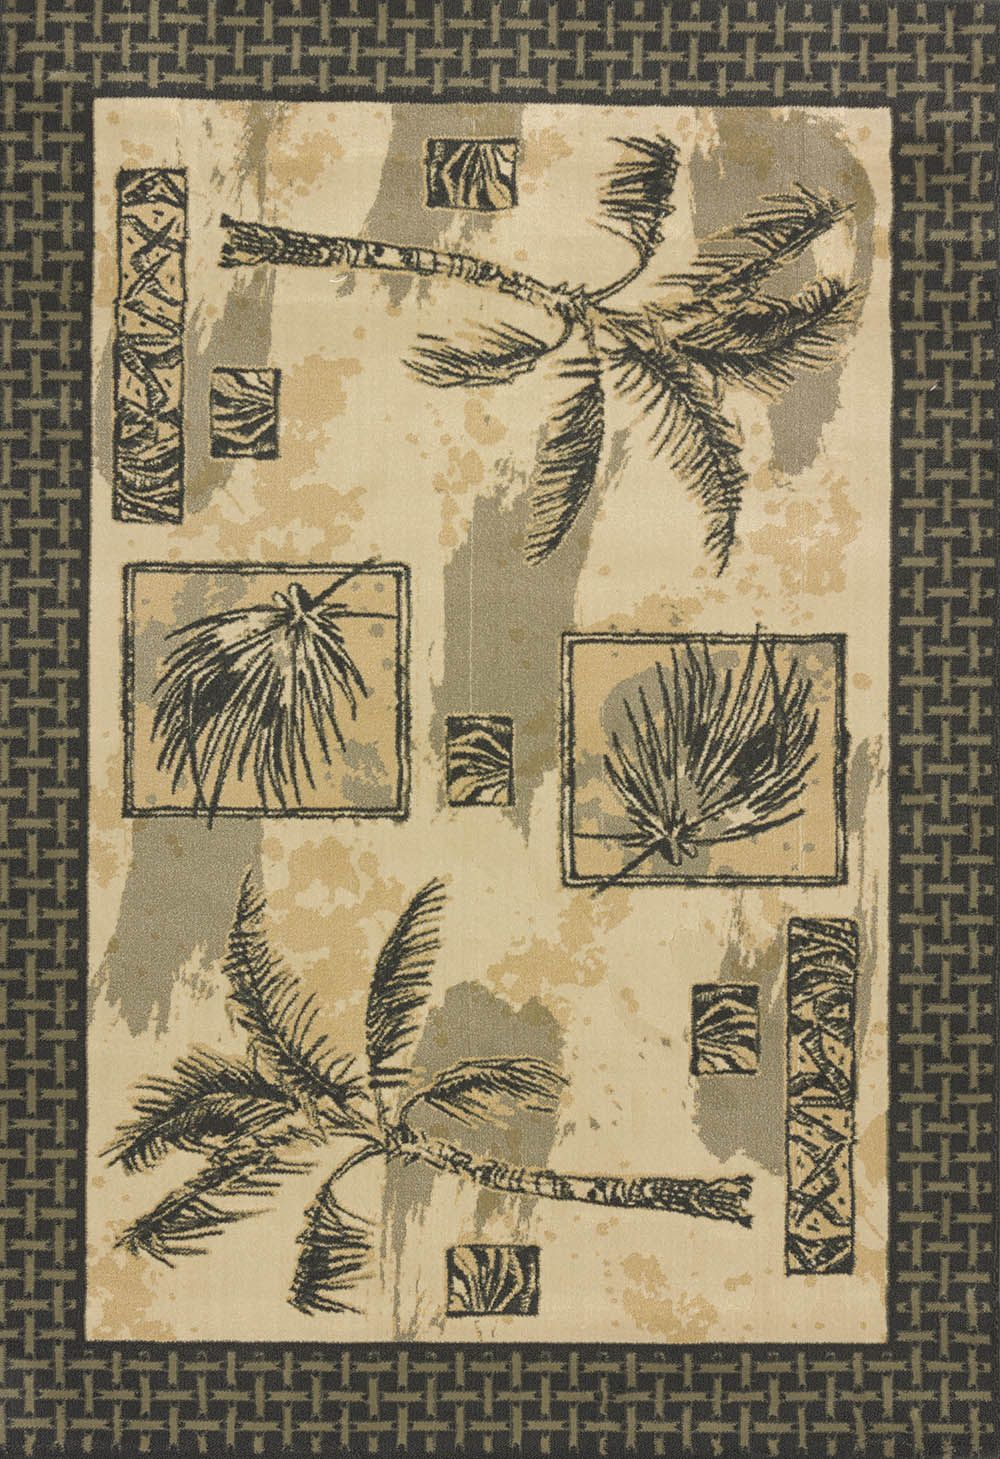 united weavers jq designer genesis jq palm breeze natur southwestern/lodge area rug collection